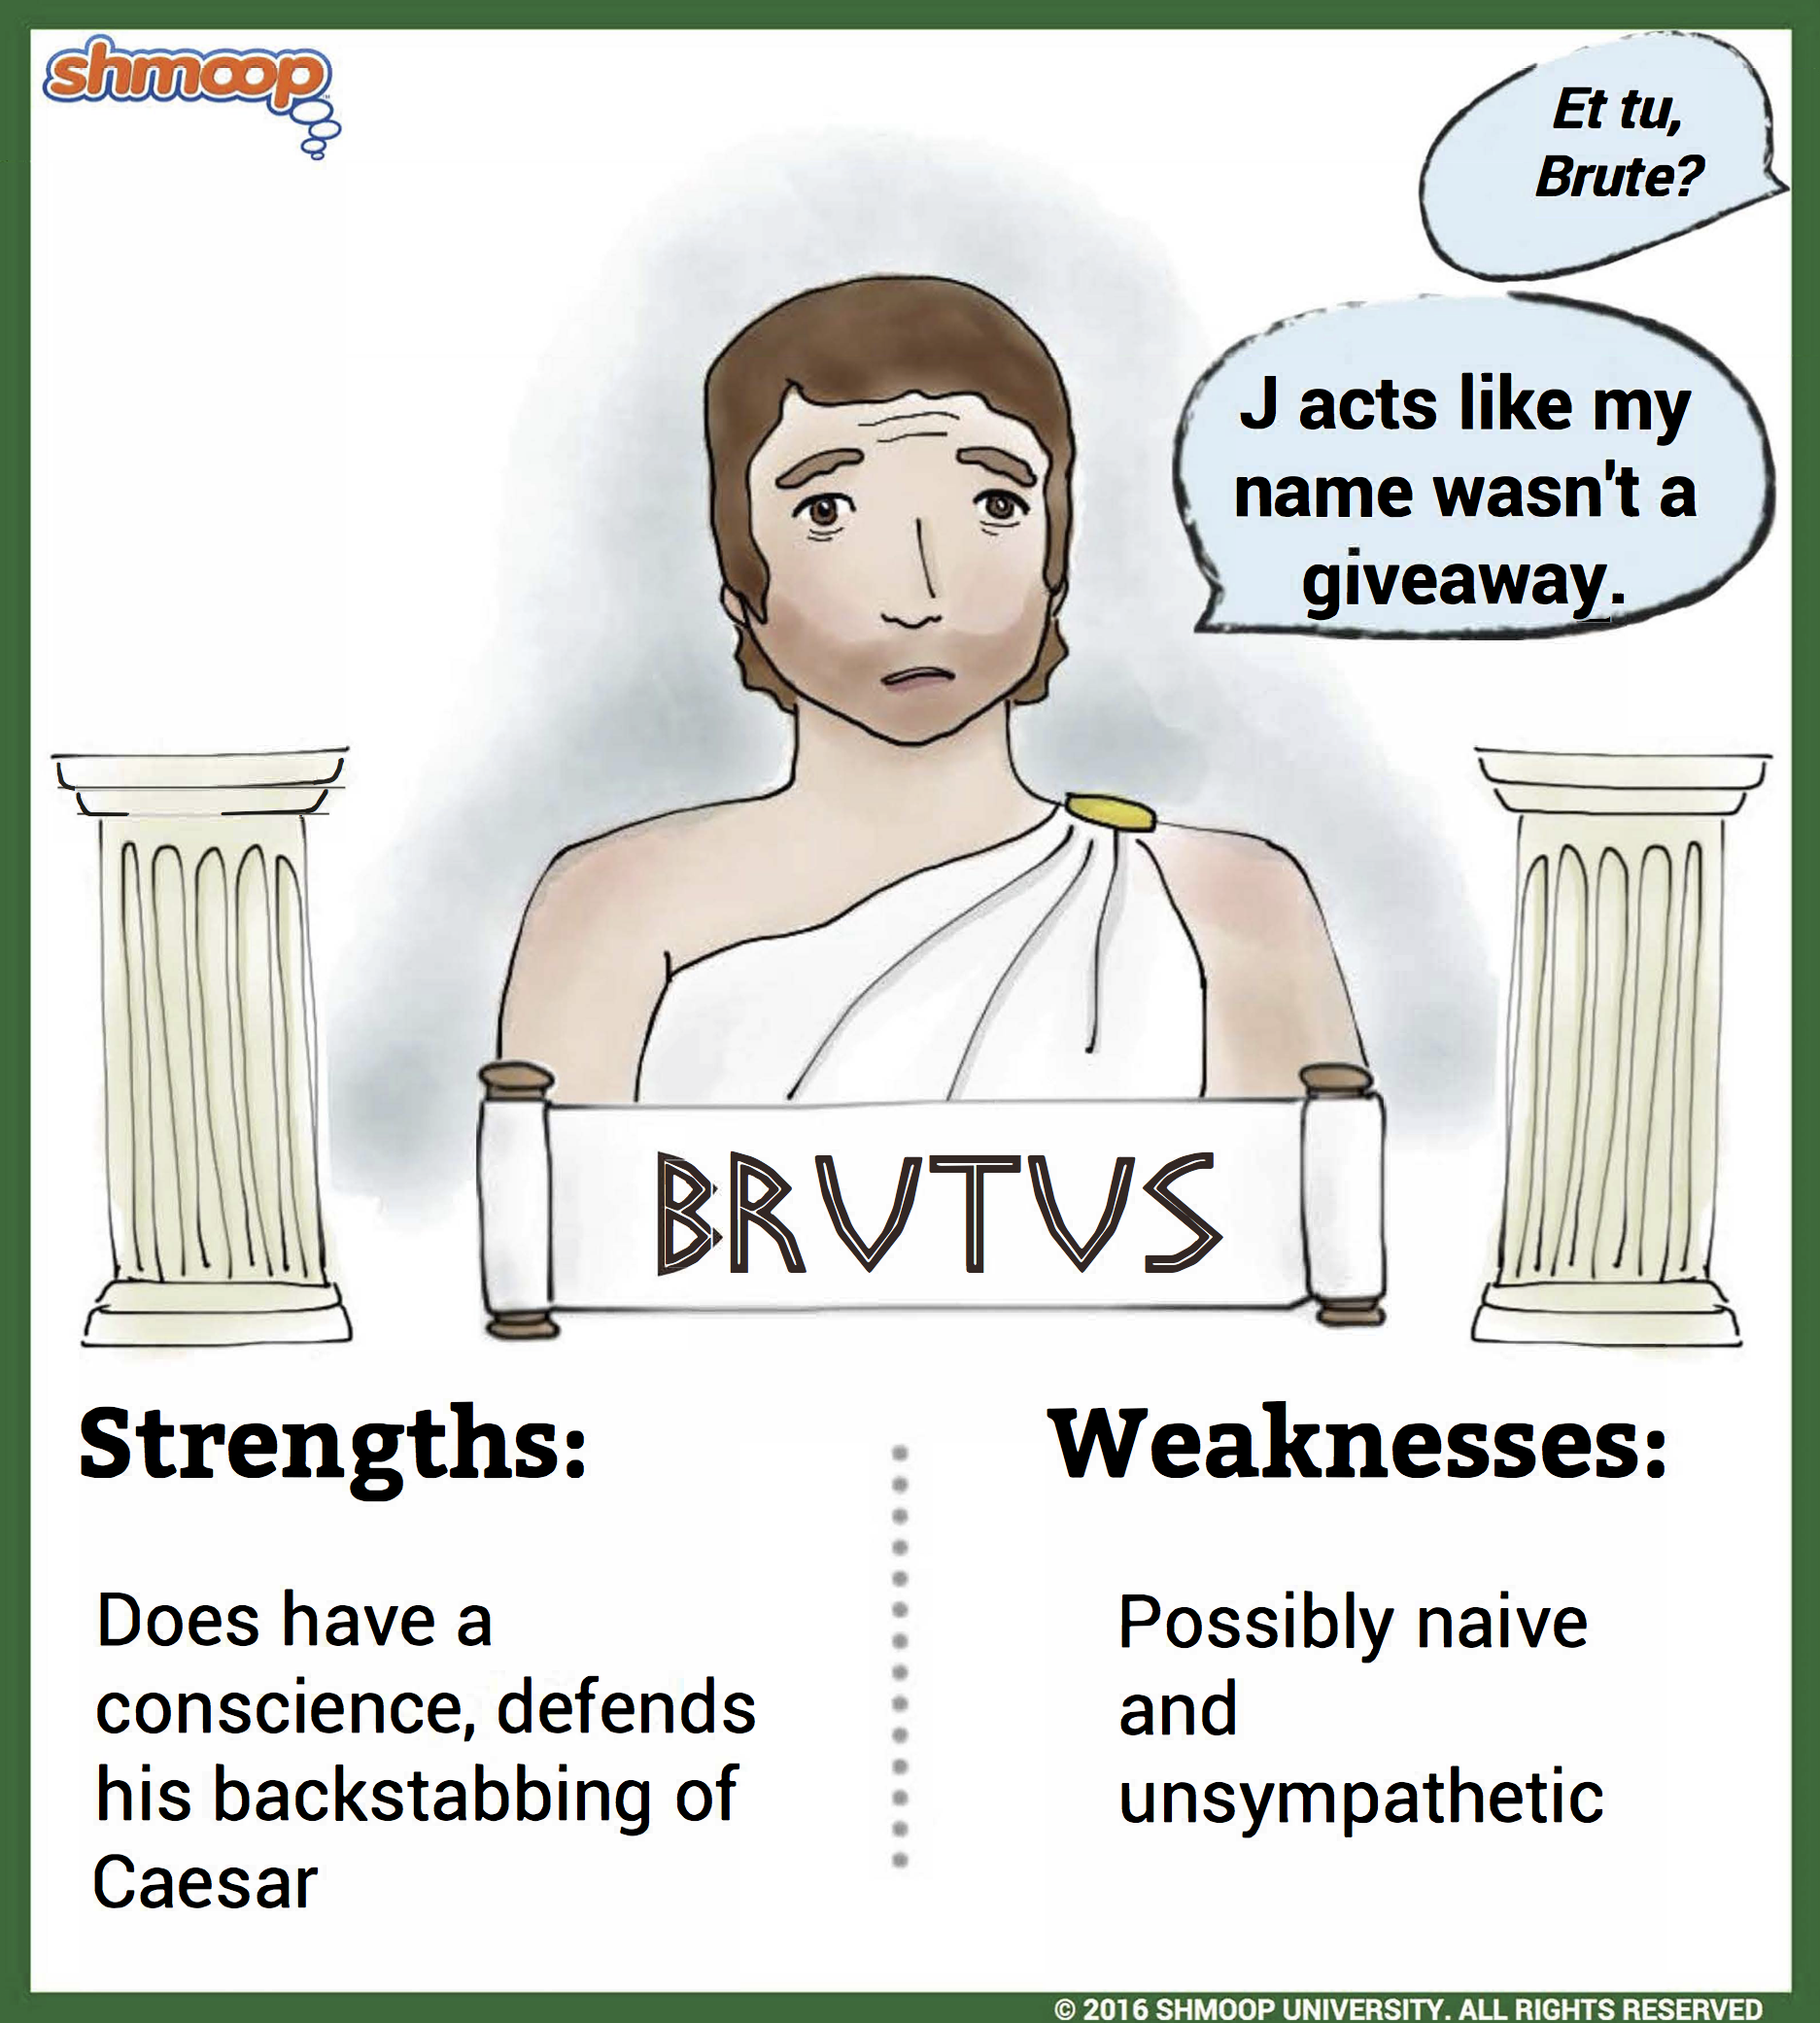 an analysis of brutus mistakes in william shakespeares julius caesar Julius caesar characters list  julius caesar: the king of rome who has just defeated the sons of pompeyhe has some virtues as well as some vices he loves his subjects he has great love & respect for his friends like brutus, mark antony etc.